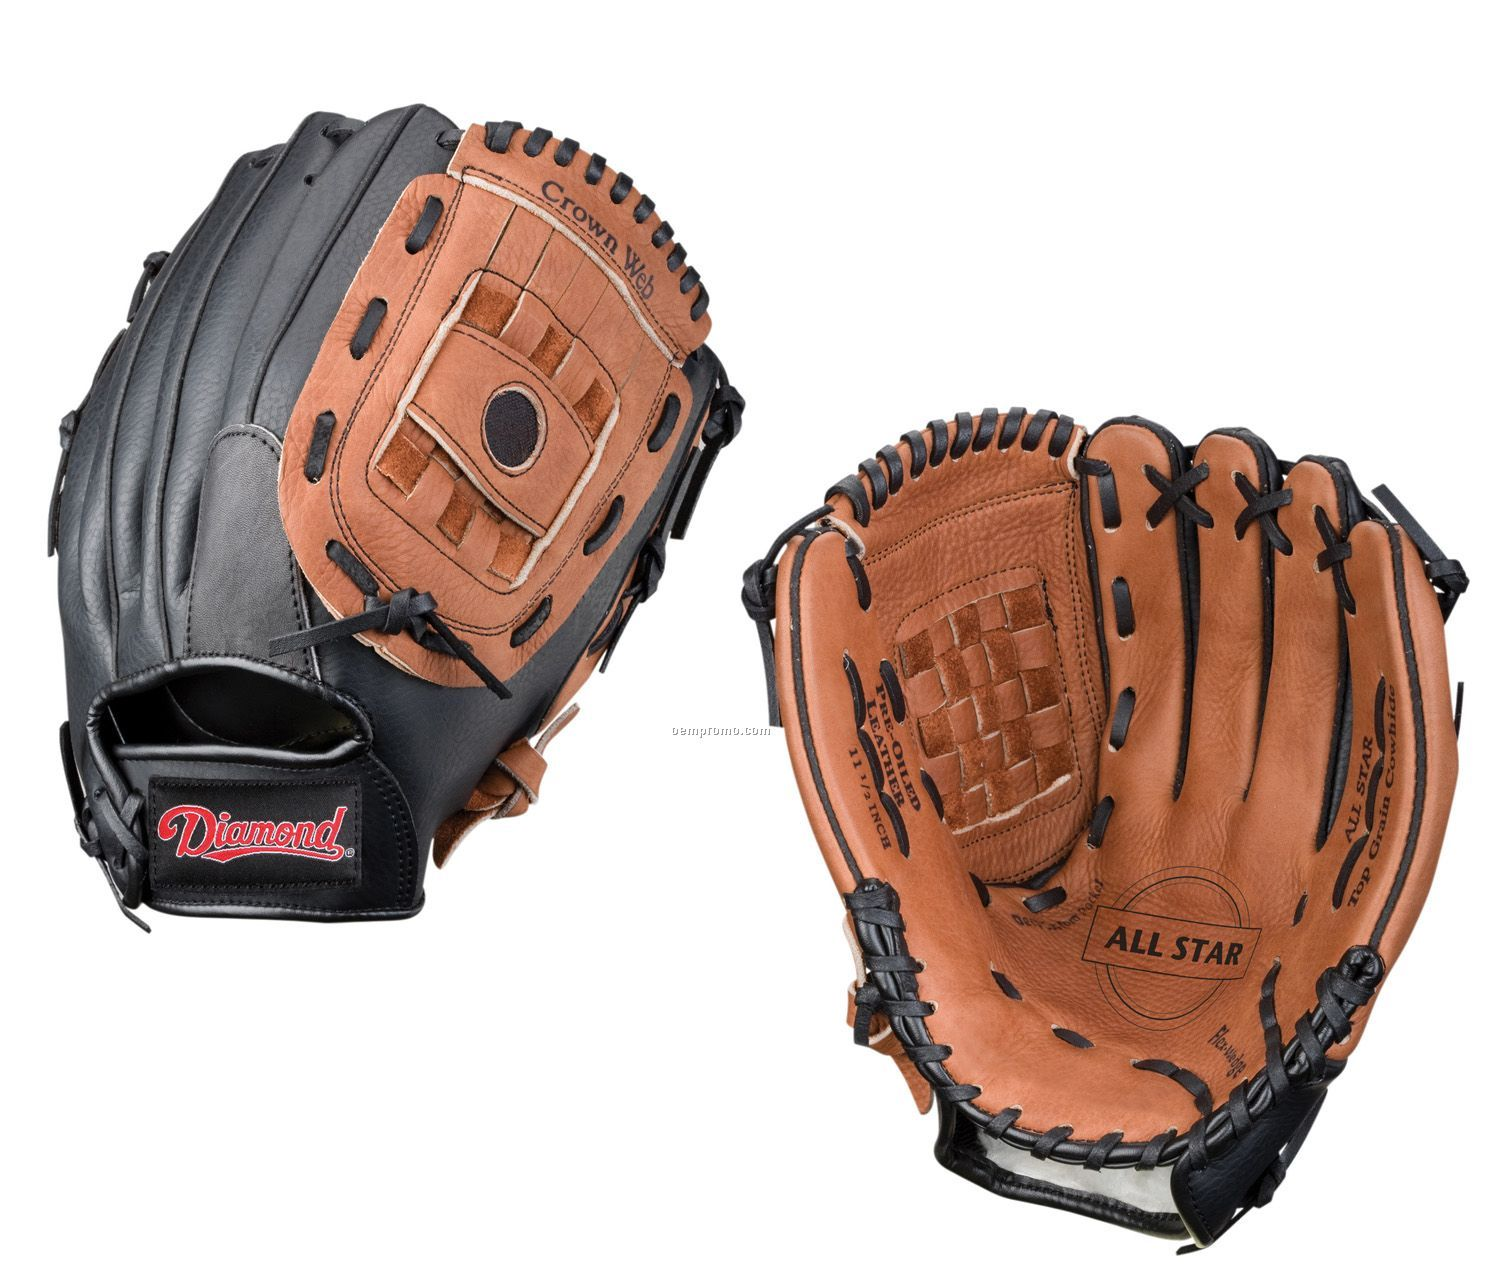 """Diamond 11.5"""" Youth Baseball Glove For Right Handed Thrower"""